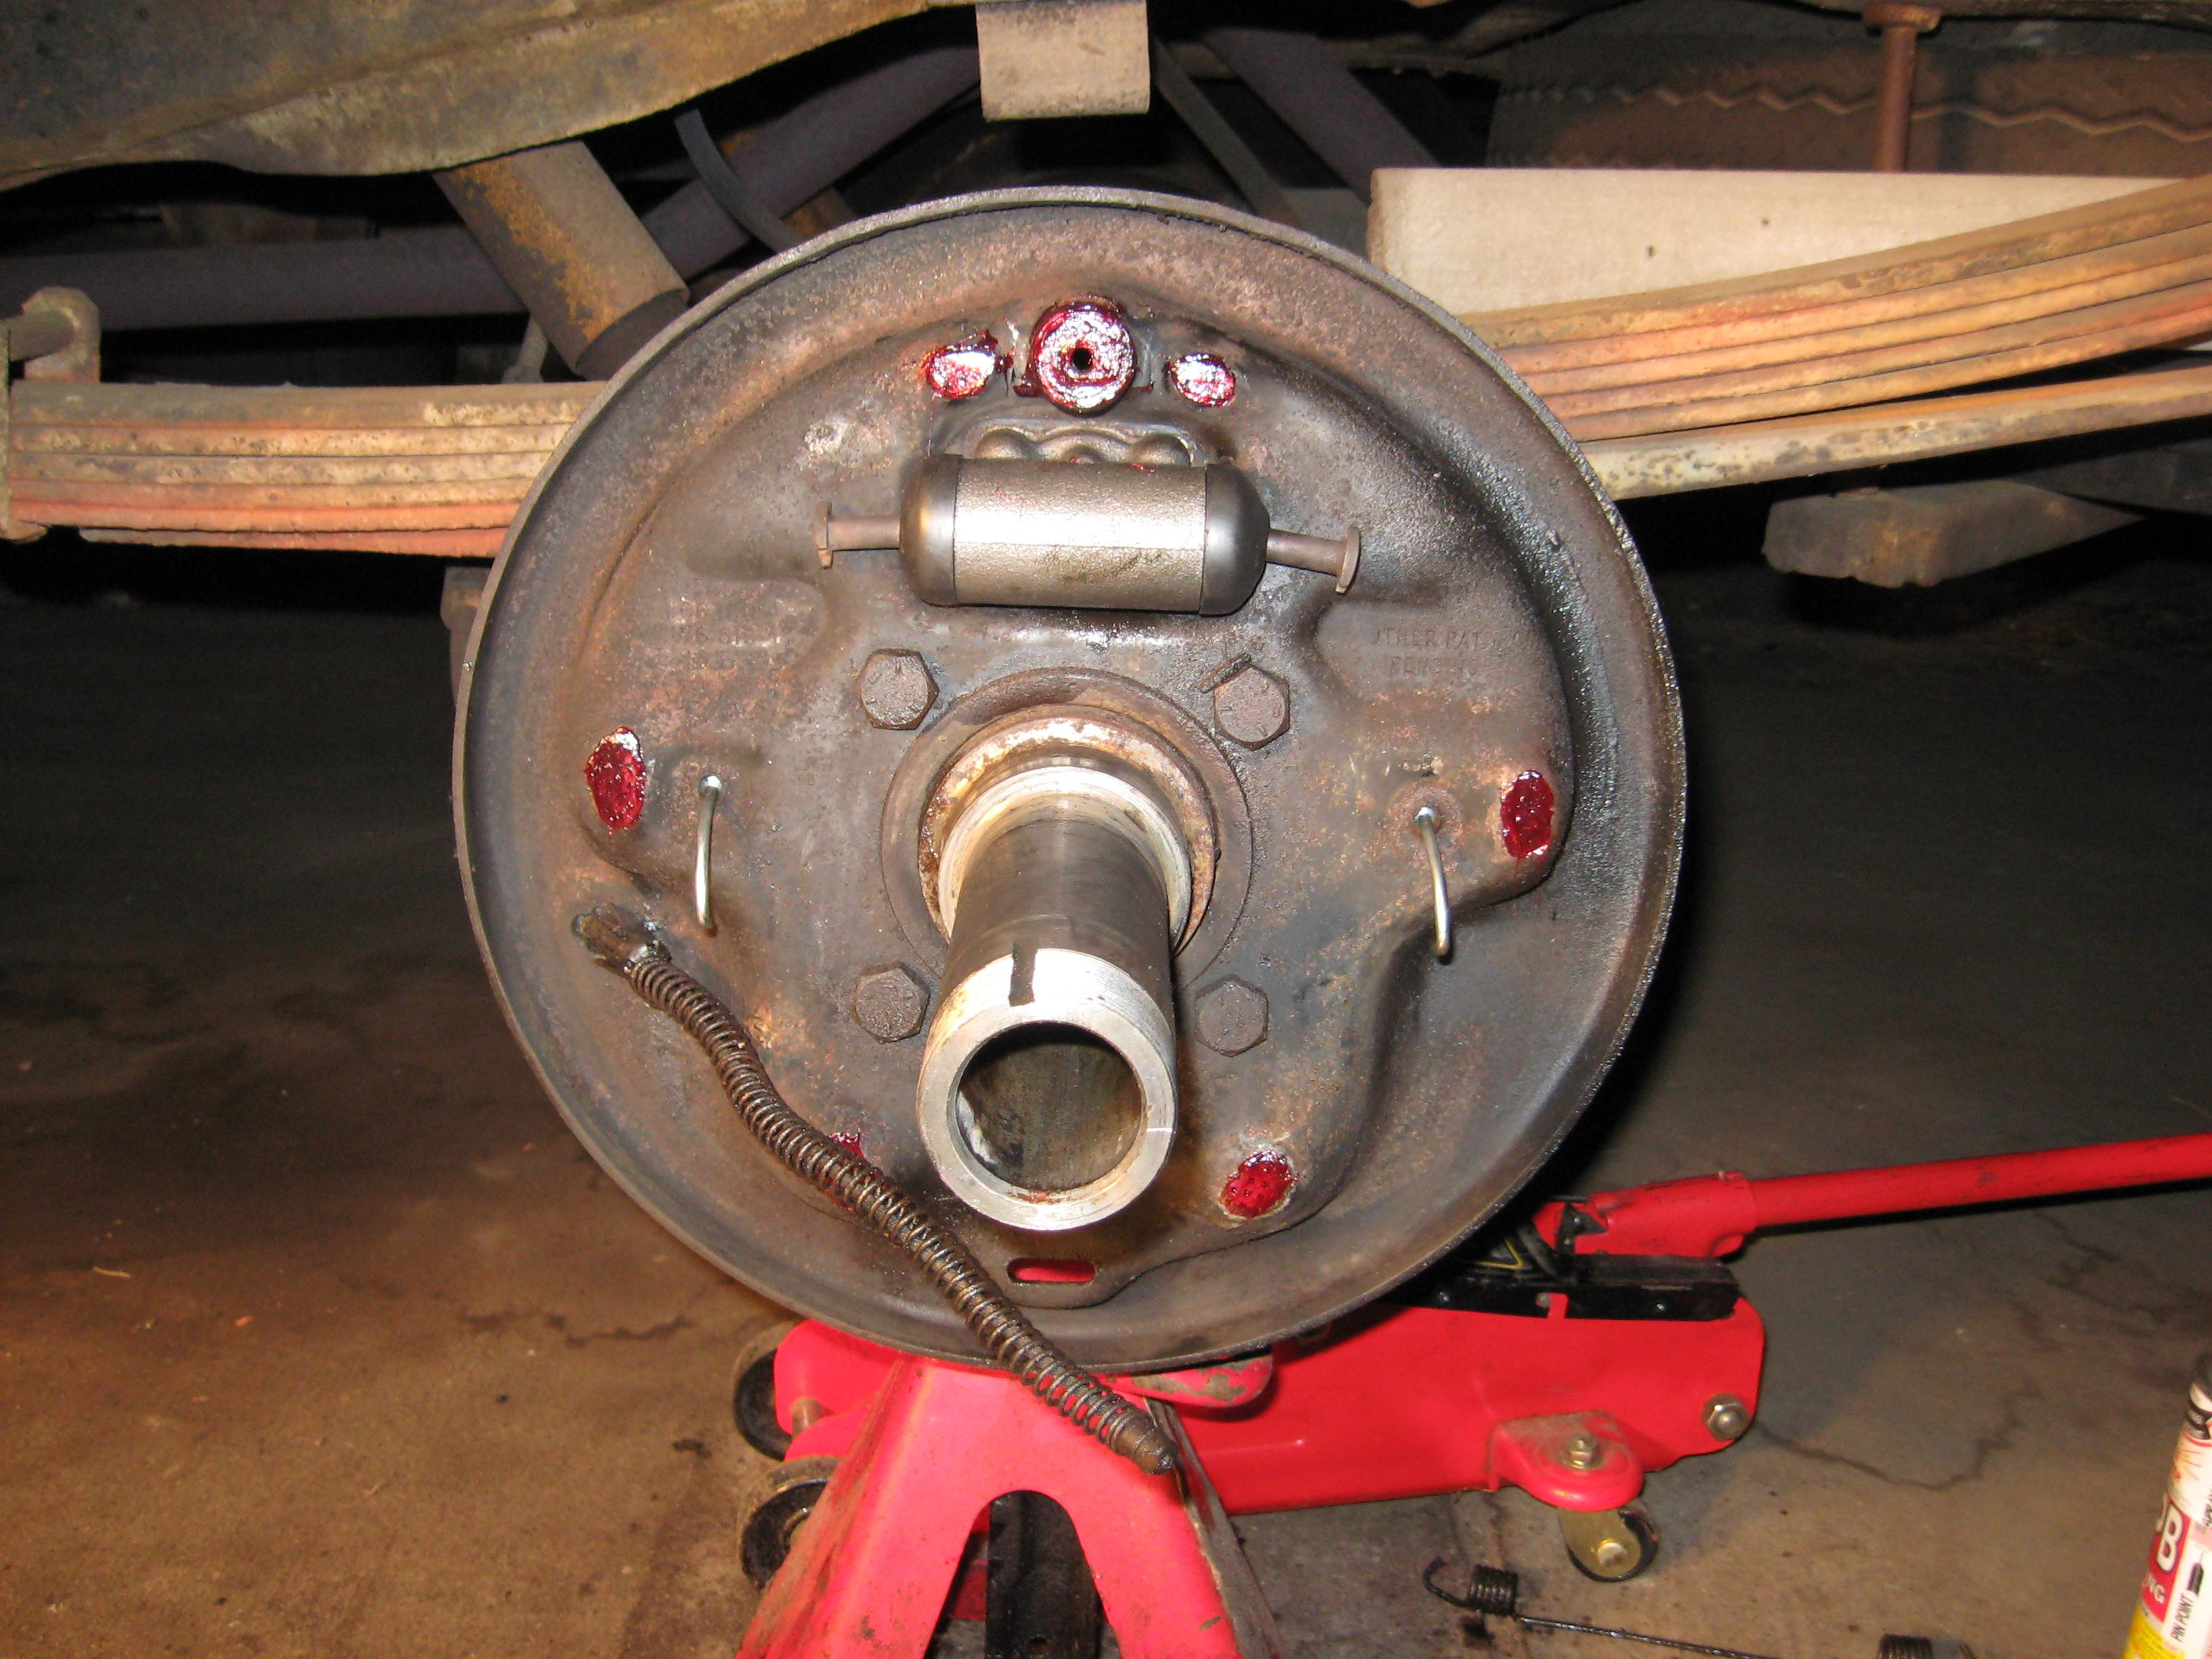 Dana 60 70 Rear Drums Drum Brake Diagram Brakes P Now Take The Old Shoe And Remove Cable Guide Drive Adjuster Lever Shaft Out With Your Hammer A Socket Extension Transfer These To